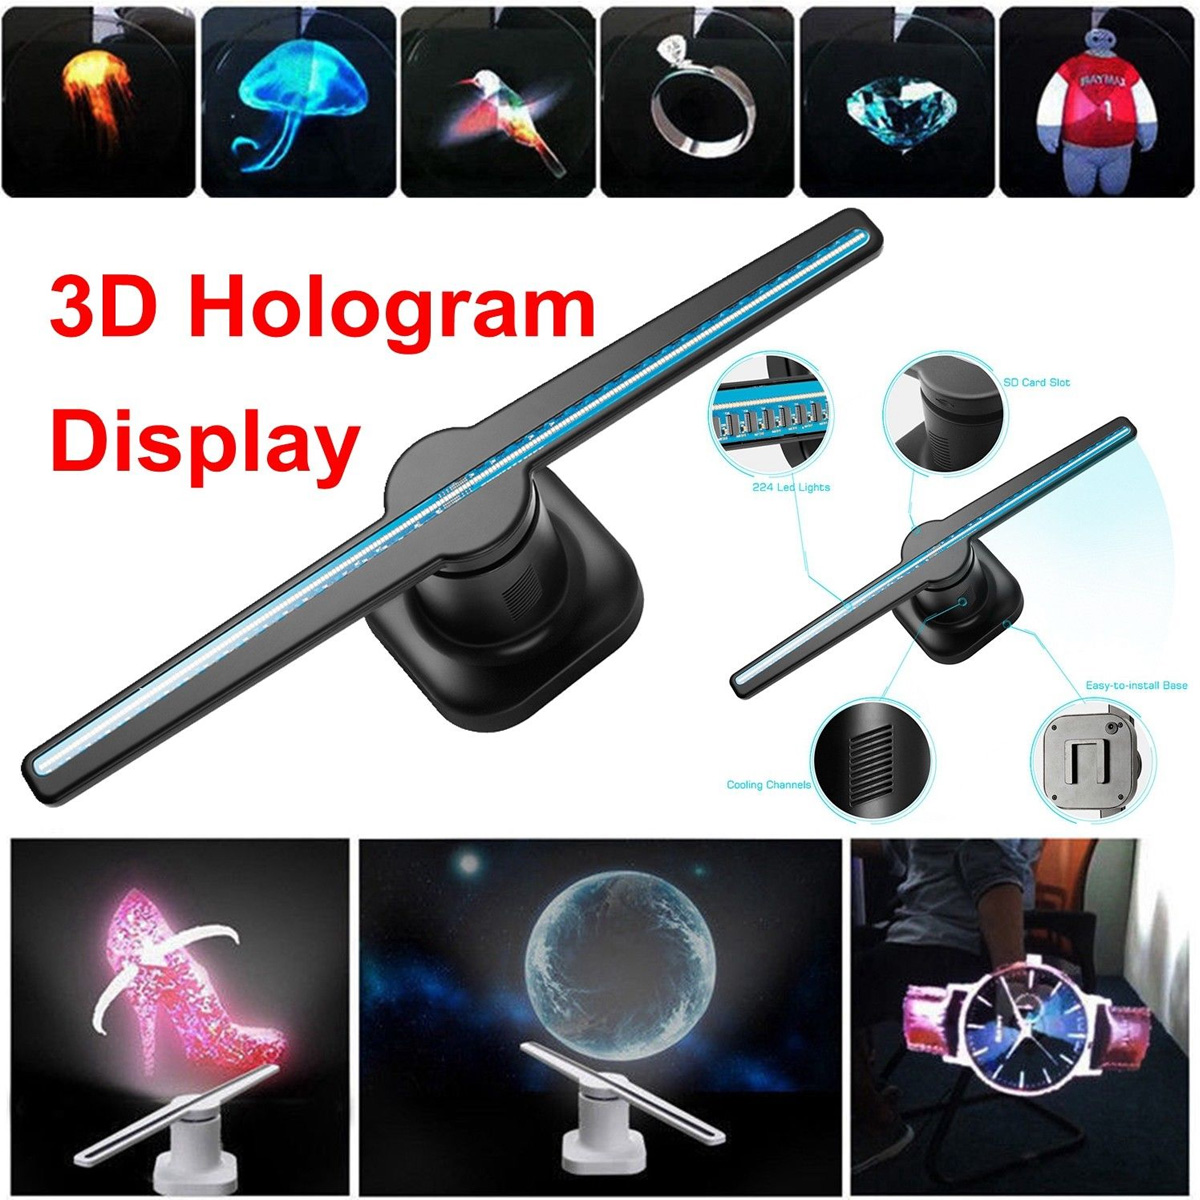 Smuxi Full 3D Holographic Graphics LED lamp Fan Display Picture Video Hologram Player Unique Hologram Projector 4500 lumens 3d dlp short throw video projector windows hologram